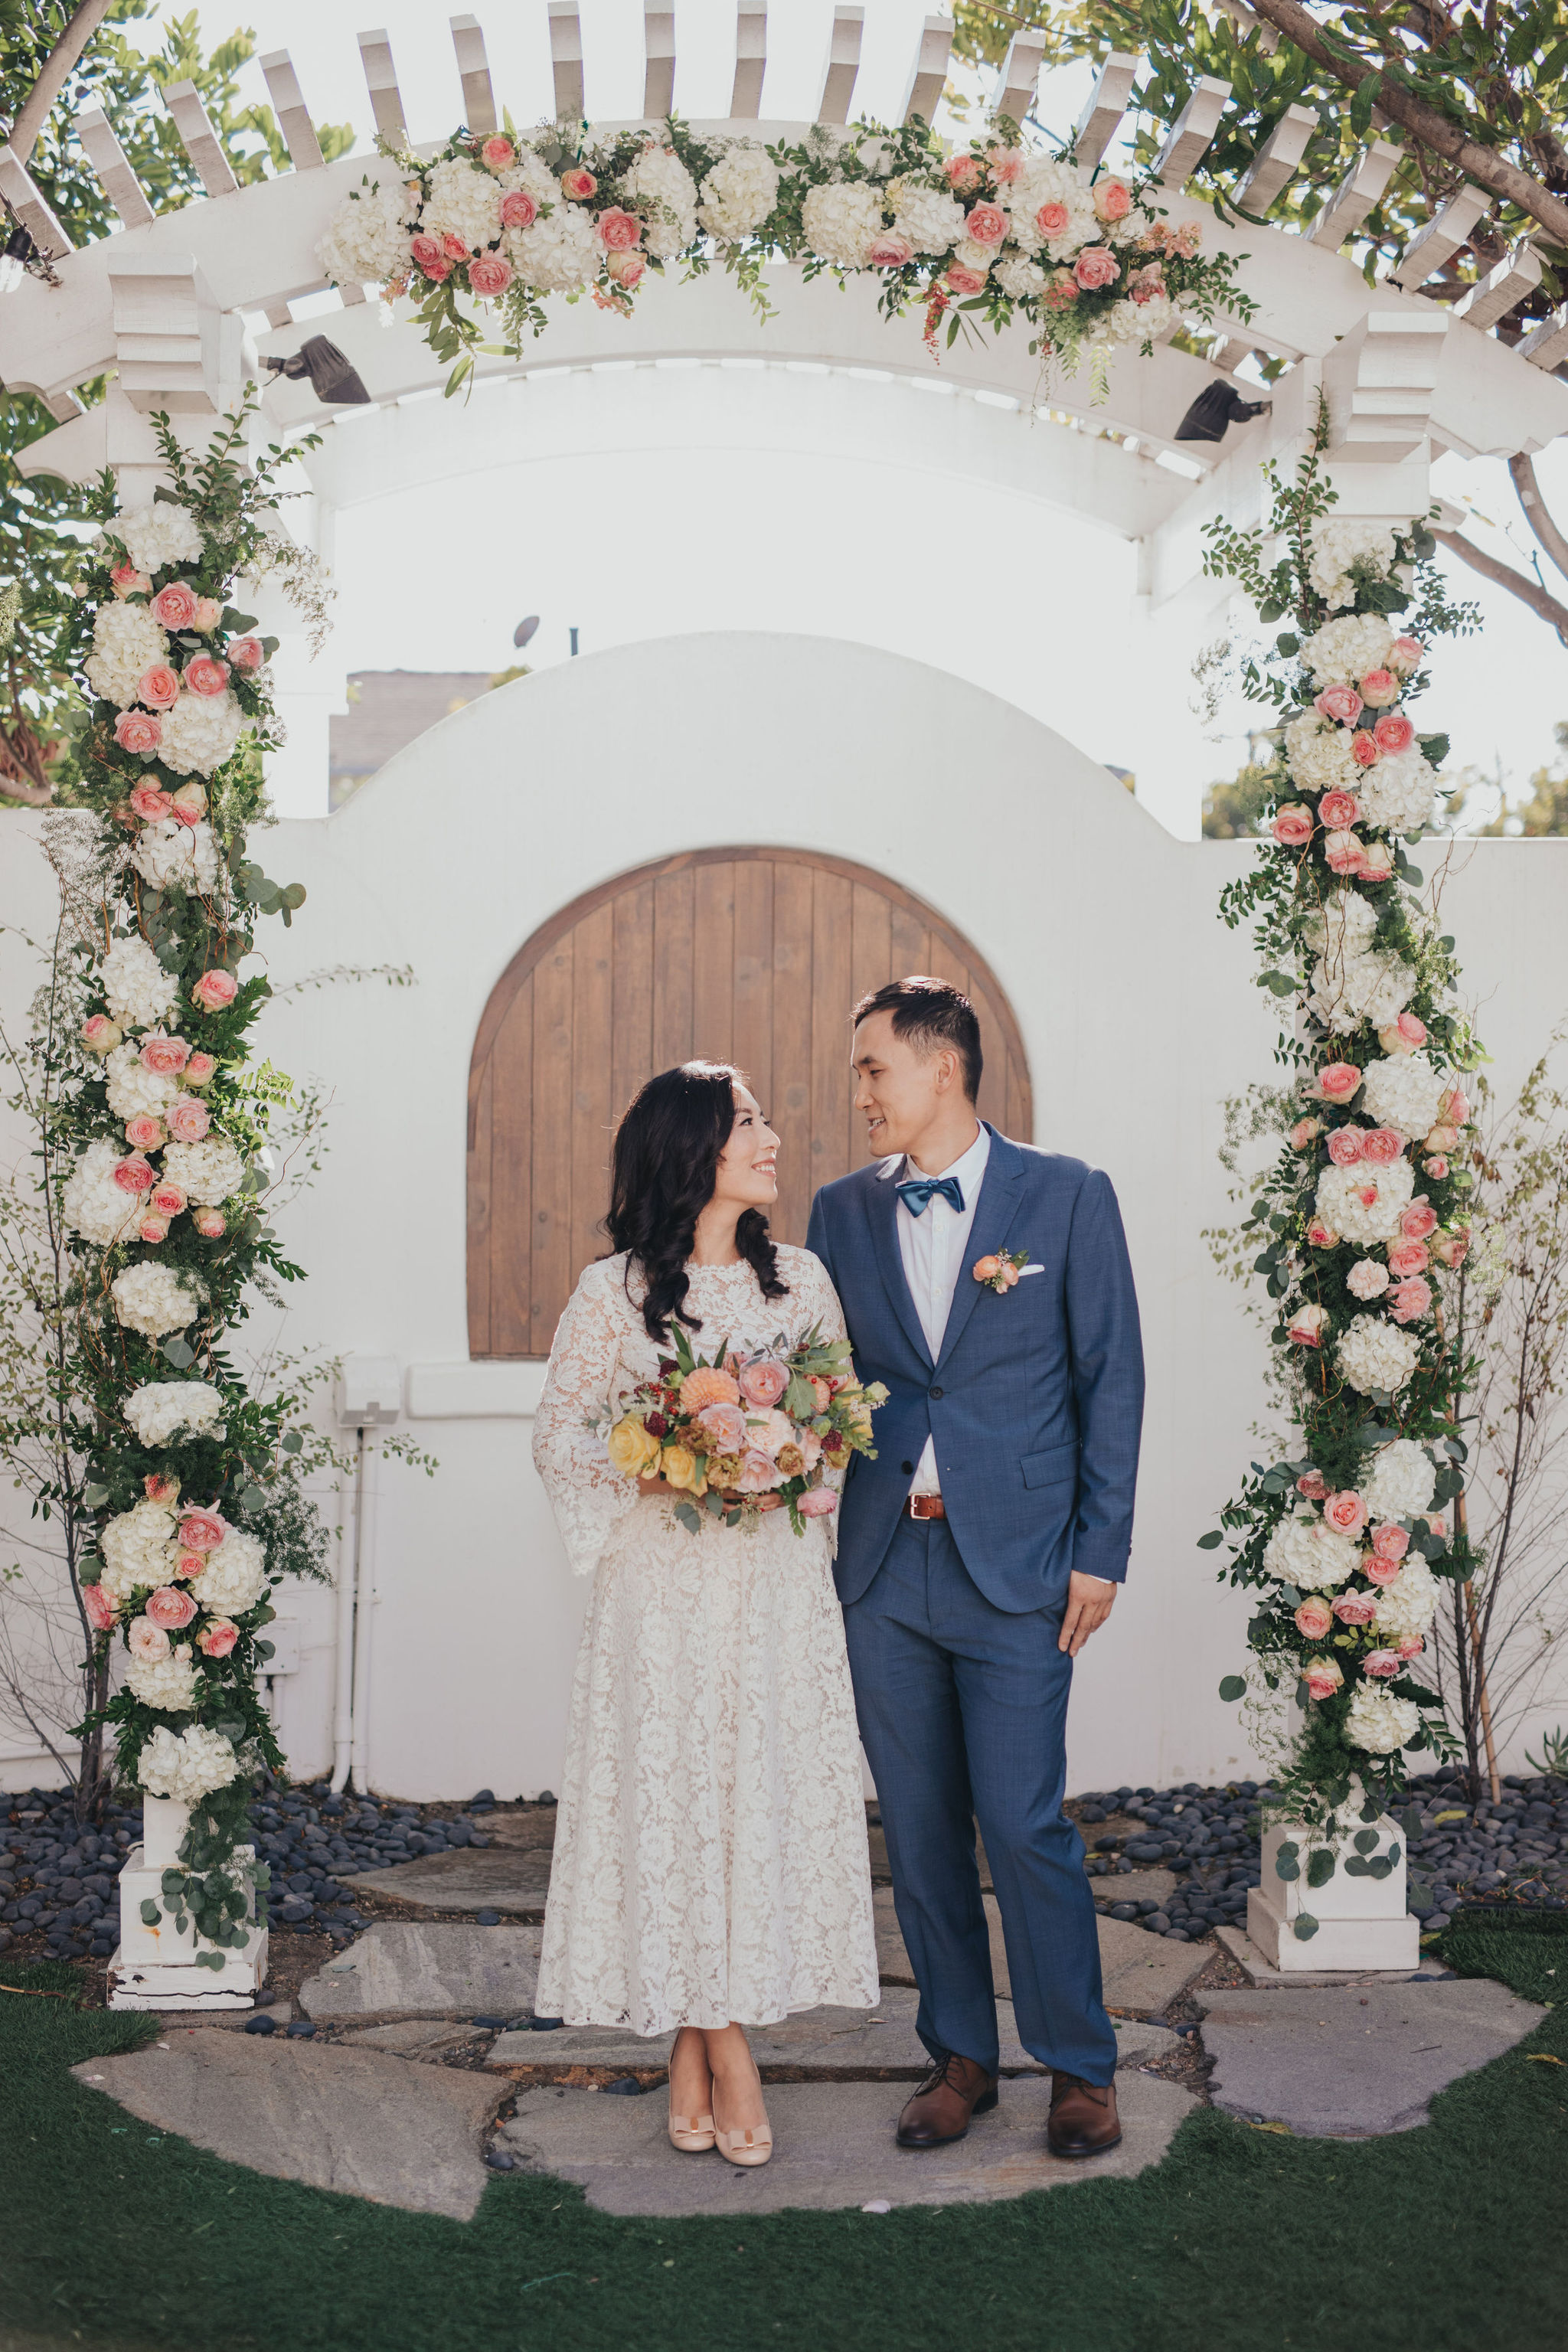 Wedding Arch | Verandas Beach House